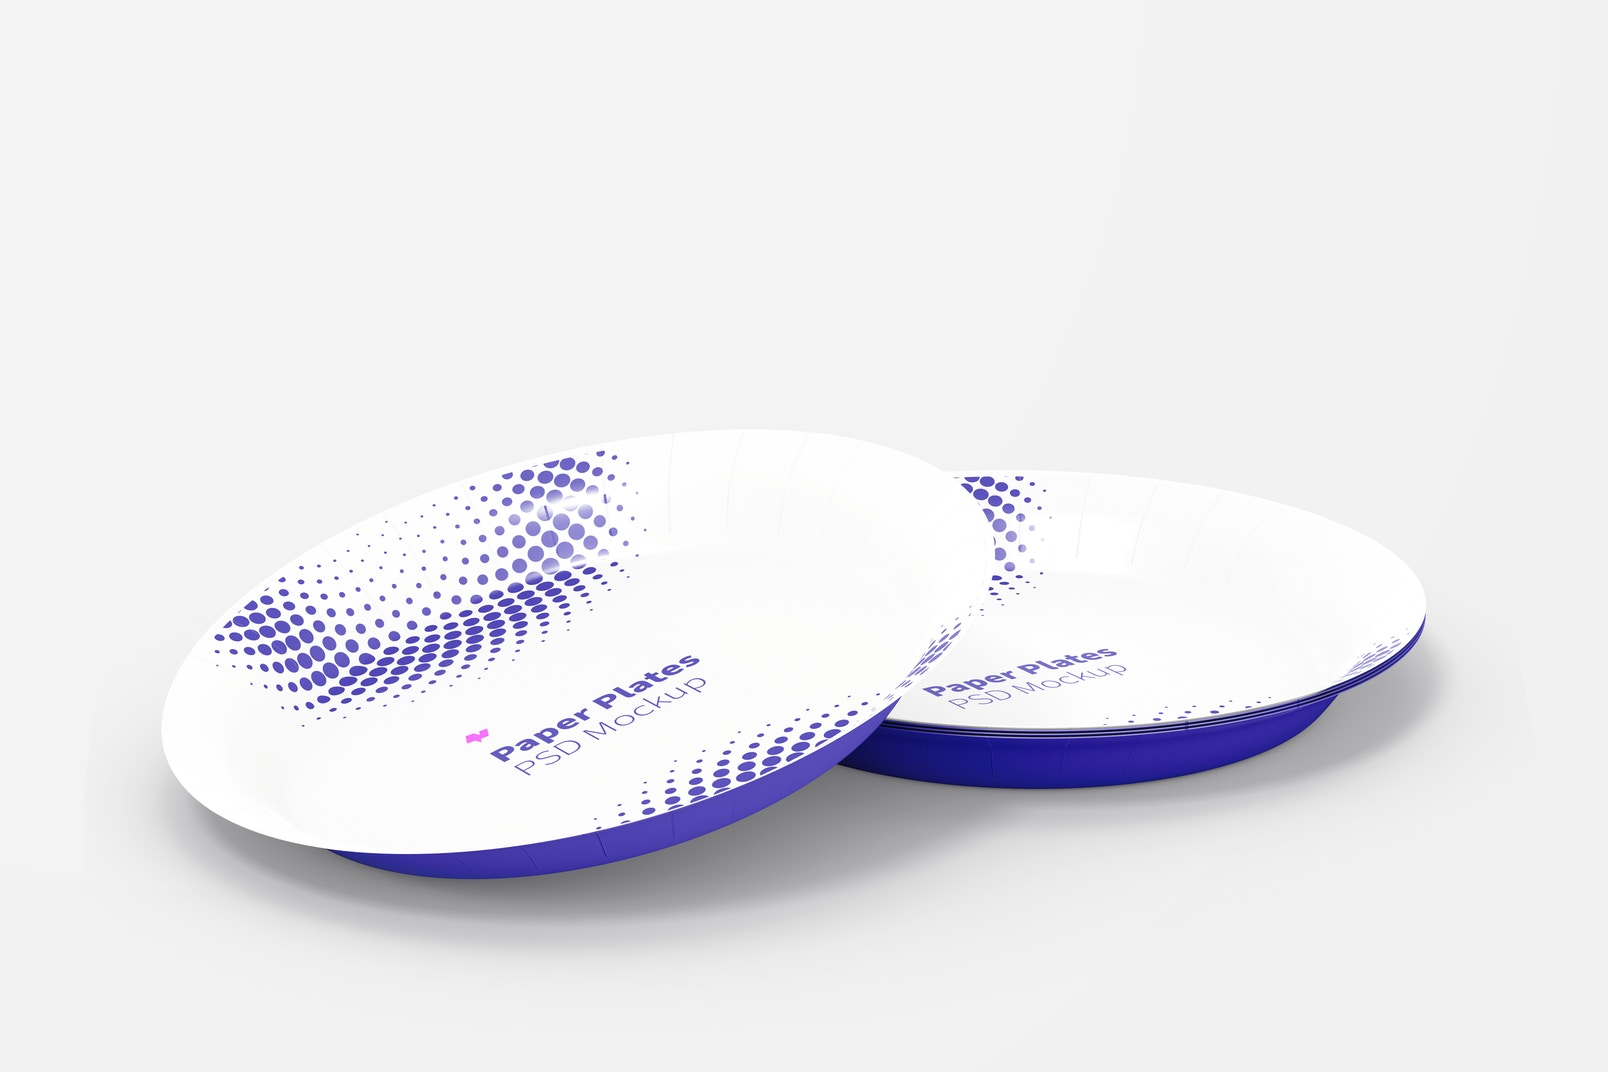 Paper Plates Mockup, Perspective View